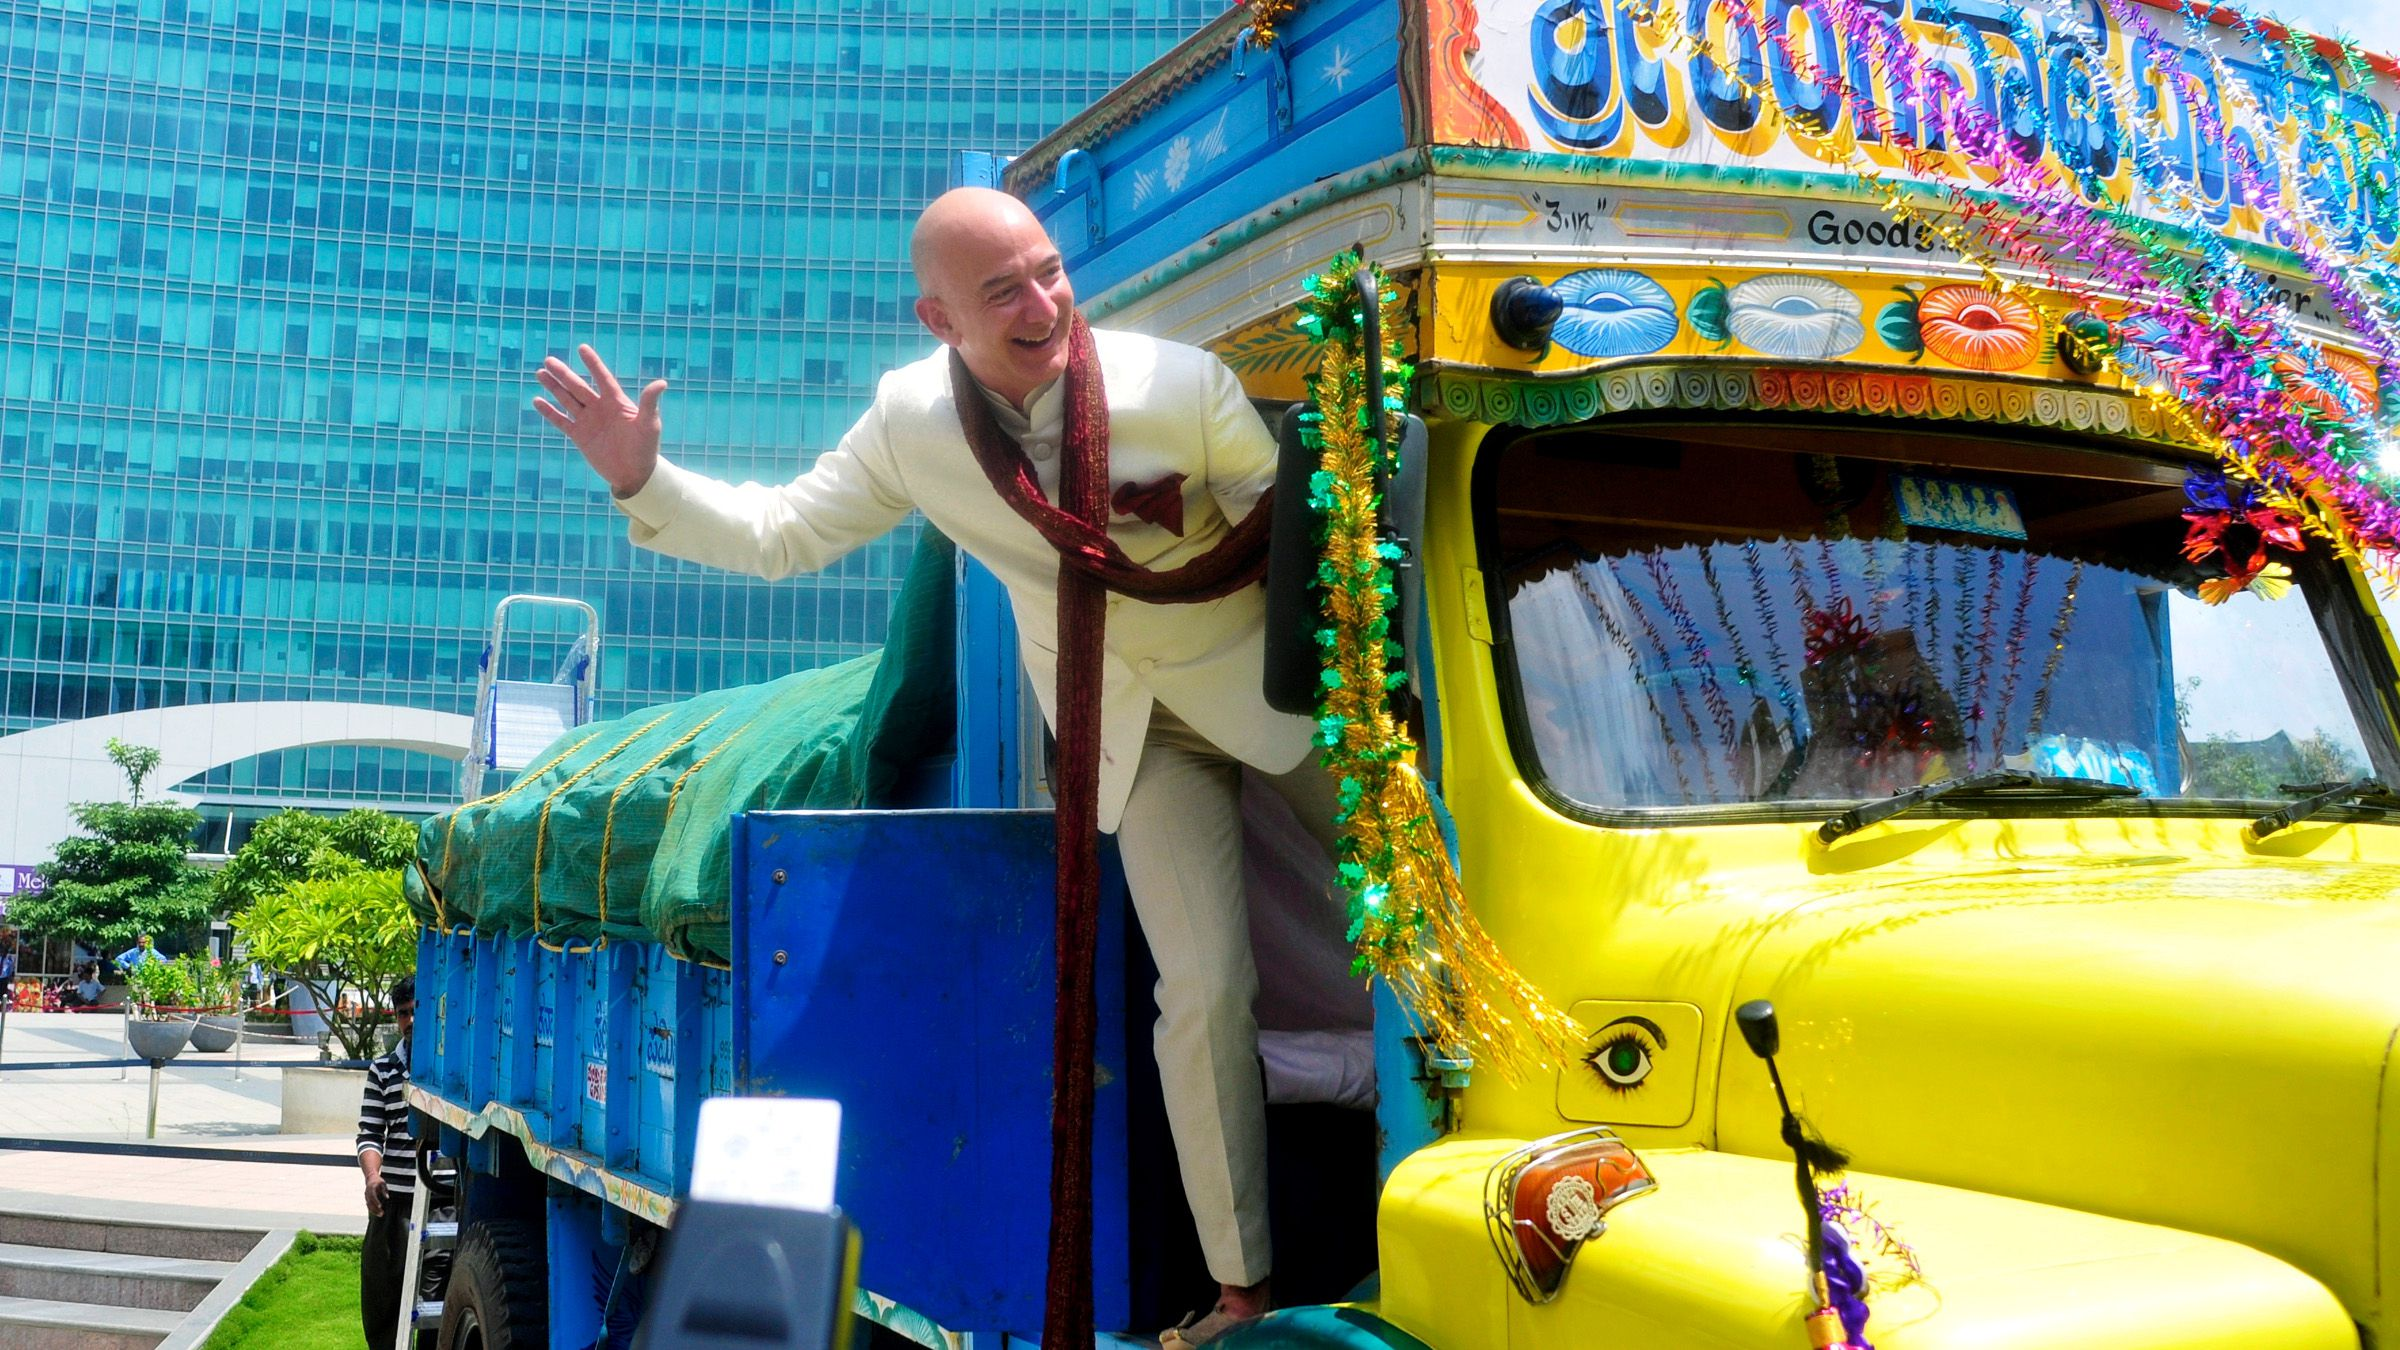 Jeff Bezos, founder and CEO of Amazon, poses as he stands on a supply truck during a photo opportunity at the premises of a shopping mall in the southern Indian city of Bangalore September 28, 2014.